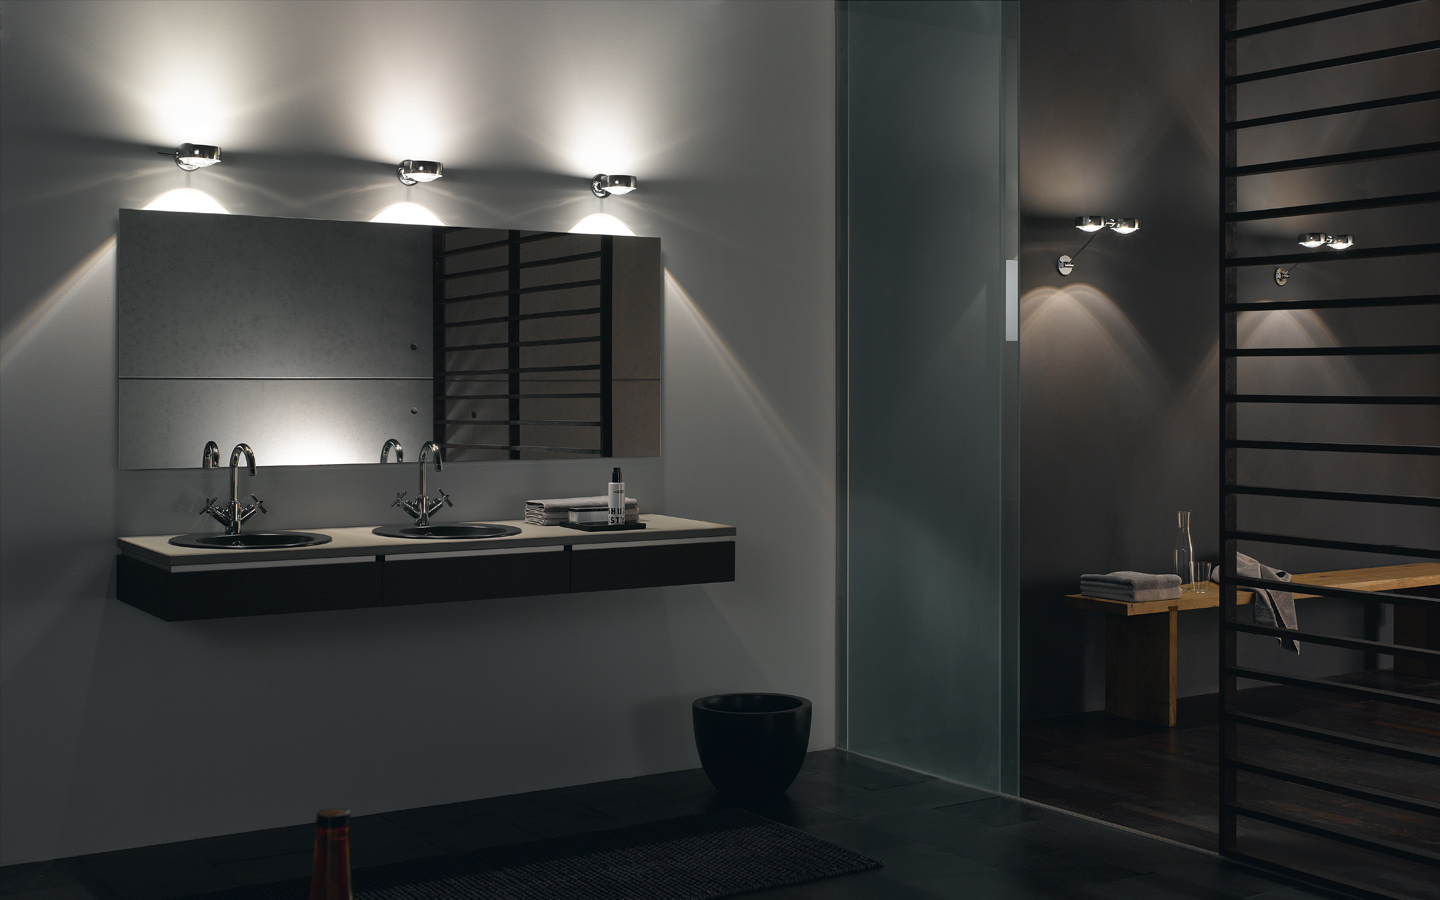 vanity lighting ideas. VIEW IN GALLERY Tolentino Modern Luxury Bathroom Lighting Fixtures Vanity Ideas C